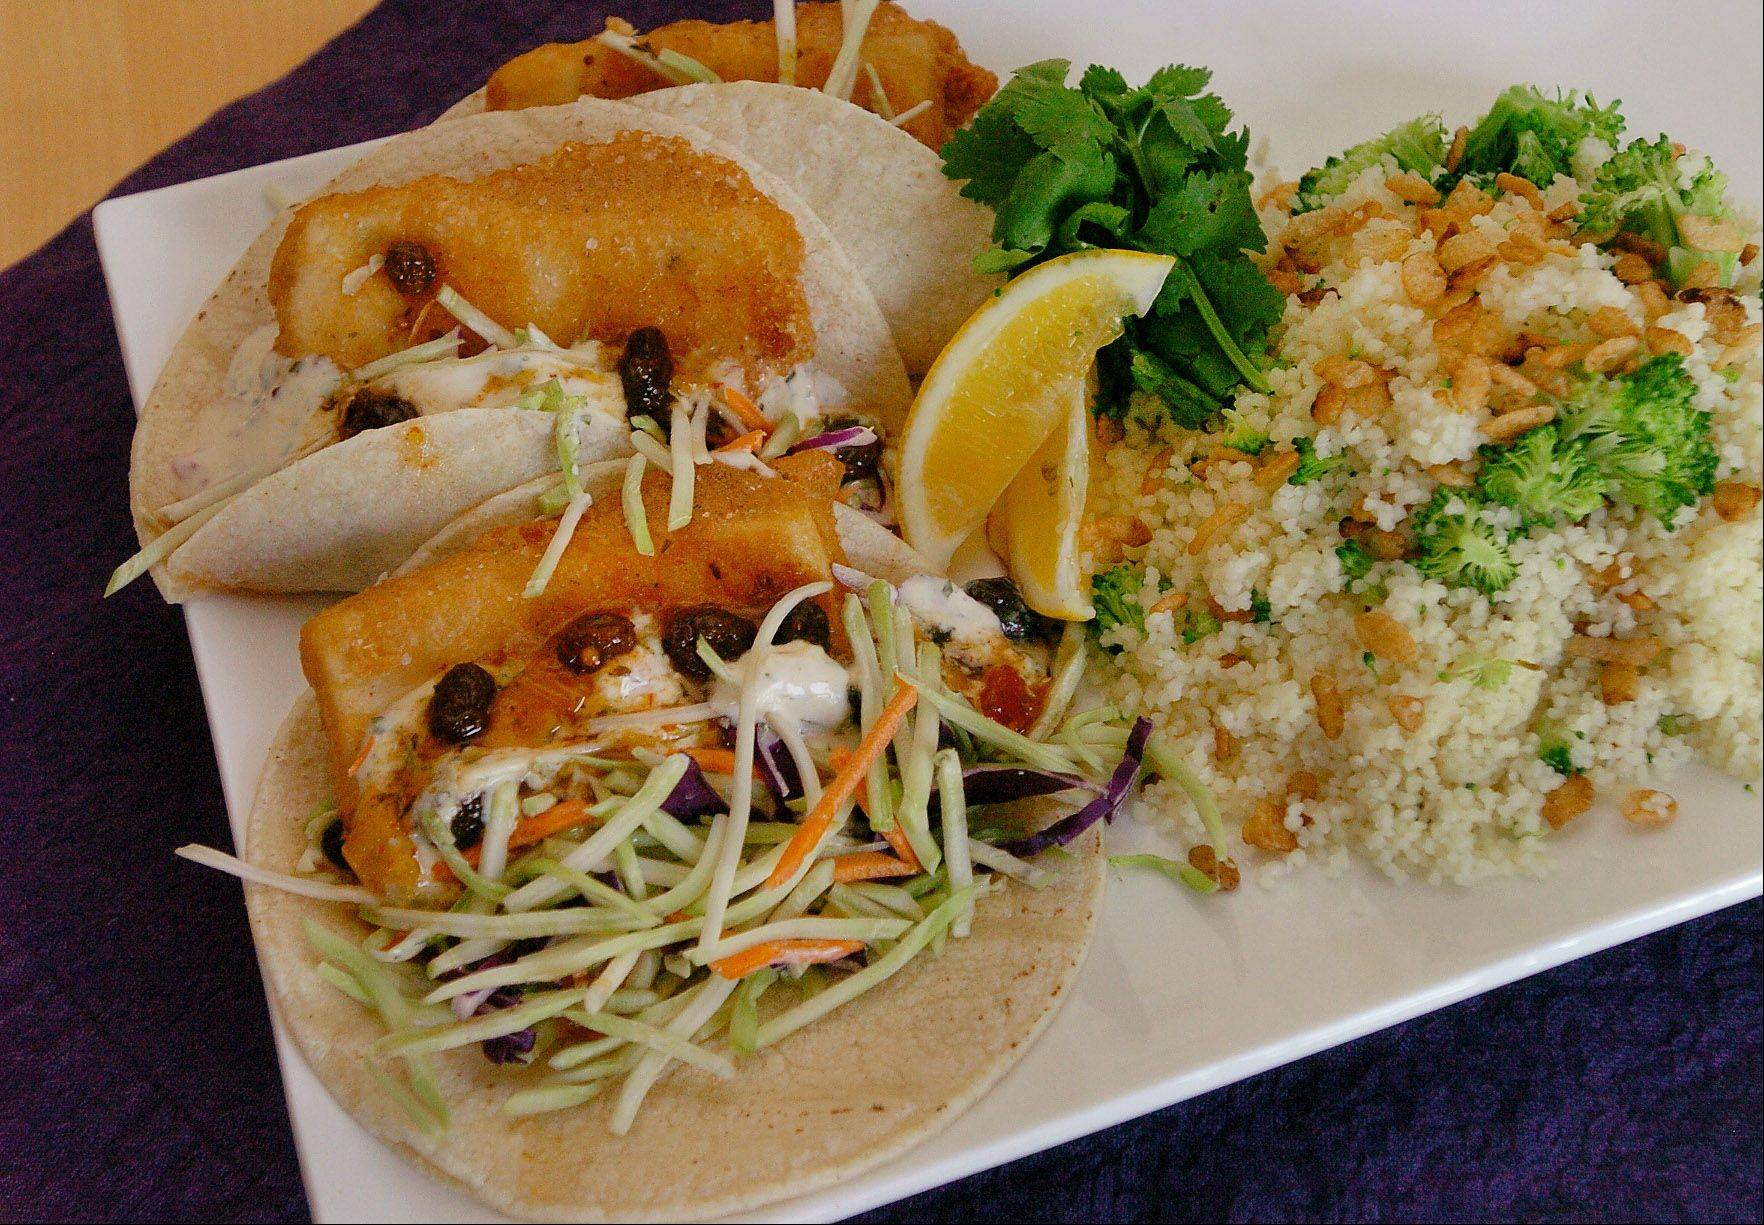 Louann Zundel's Baja-style tofu tacos earned her a spot in Round 2 of the Cook of the Week Challenge.